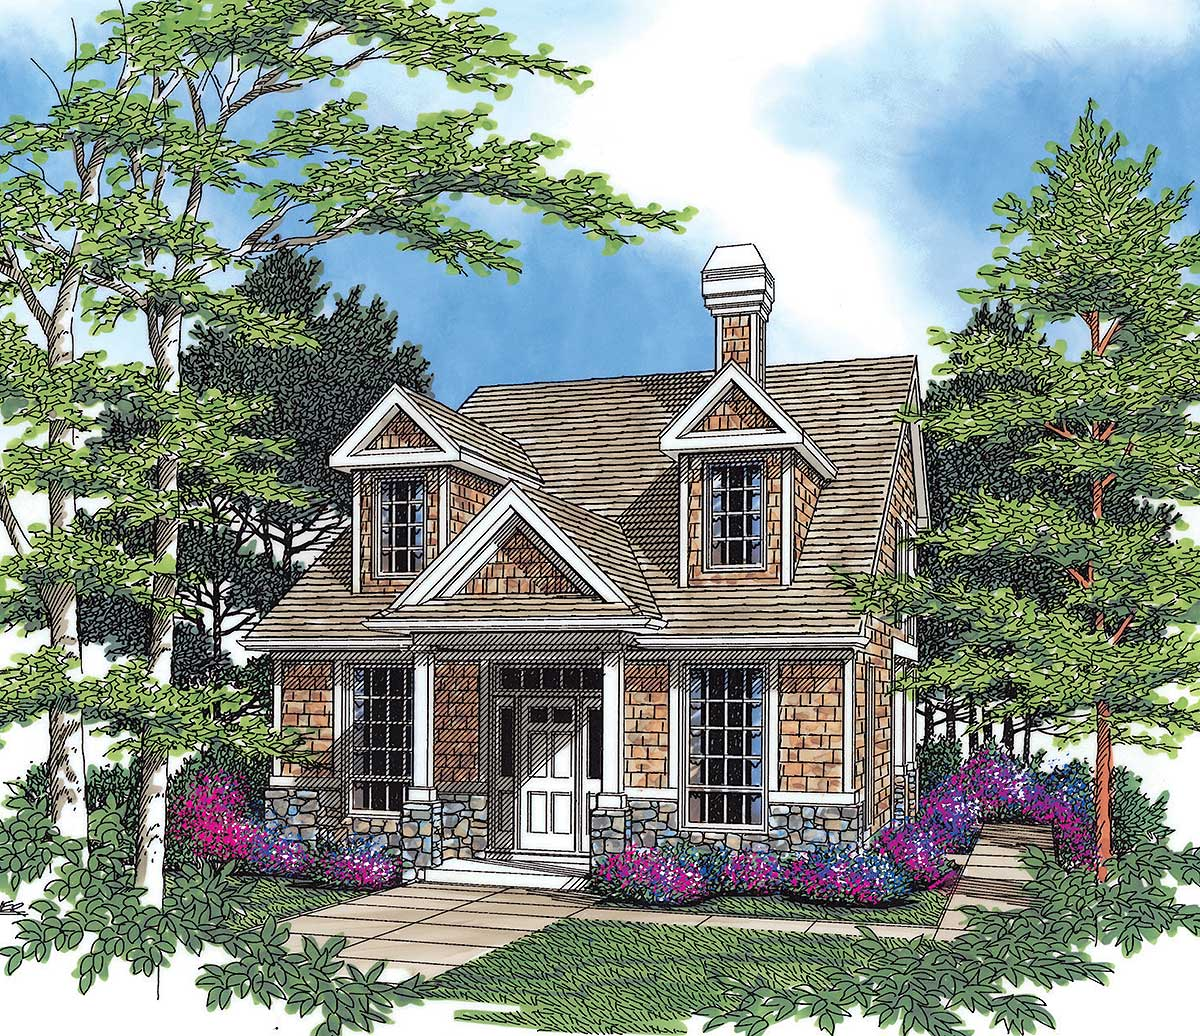 Storybook cottage 69181am architectural designs for Storybook cottage plans